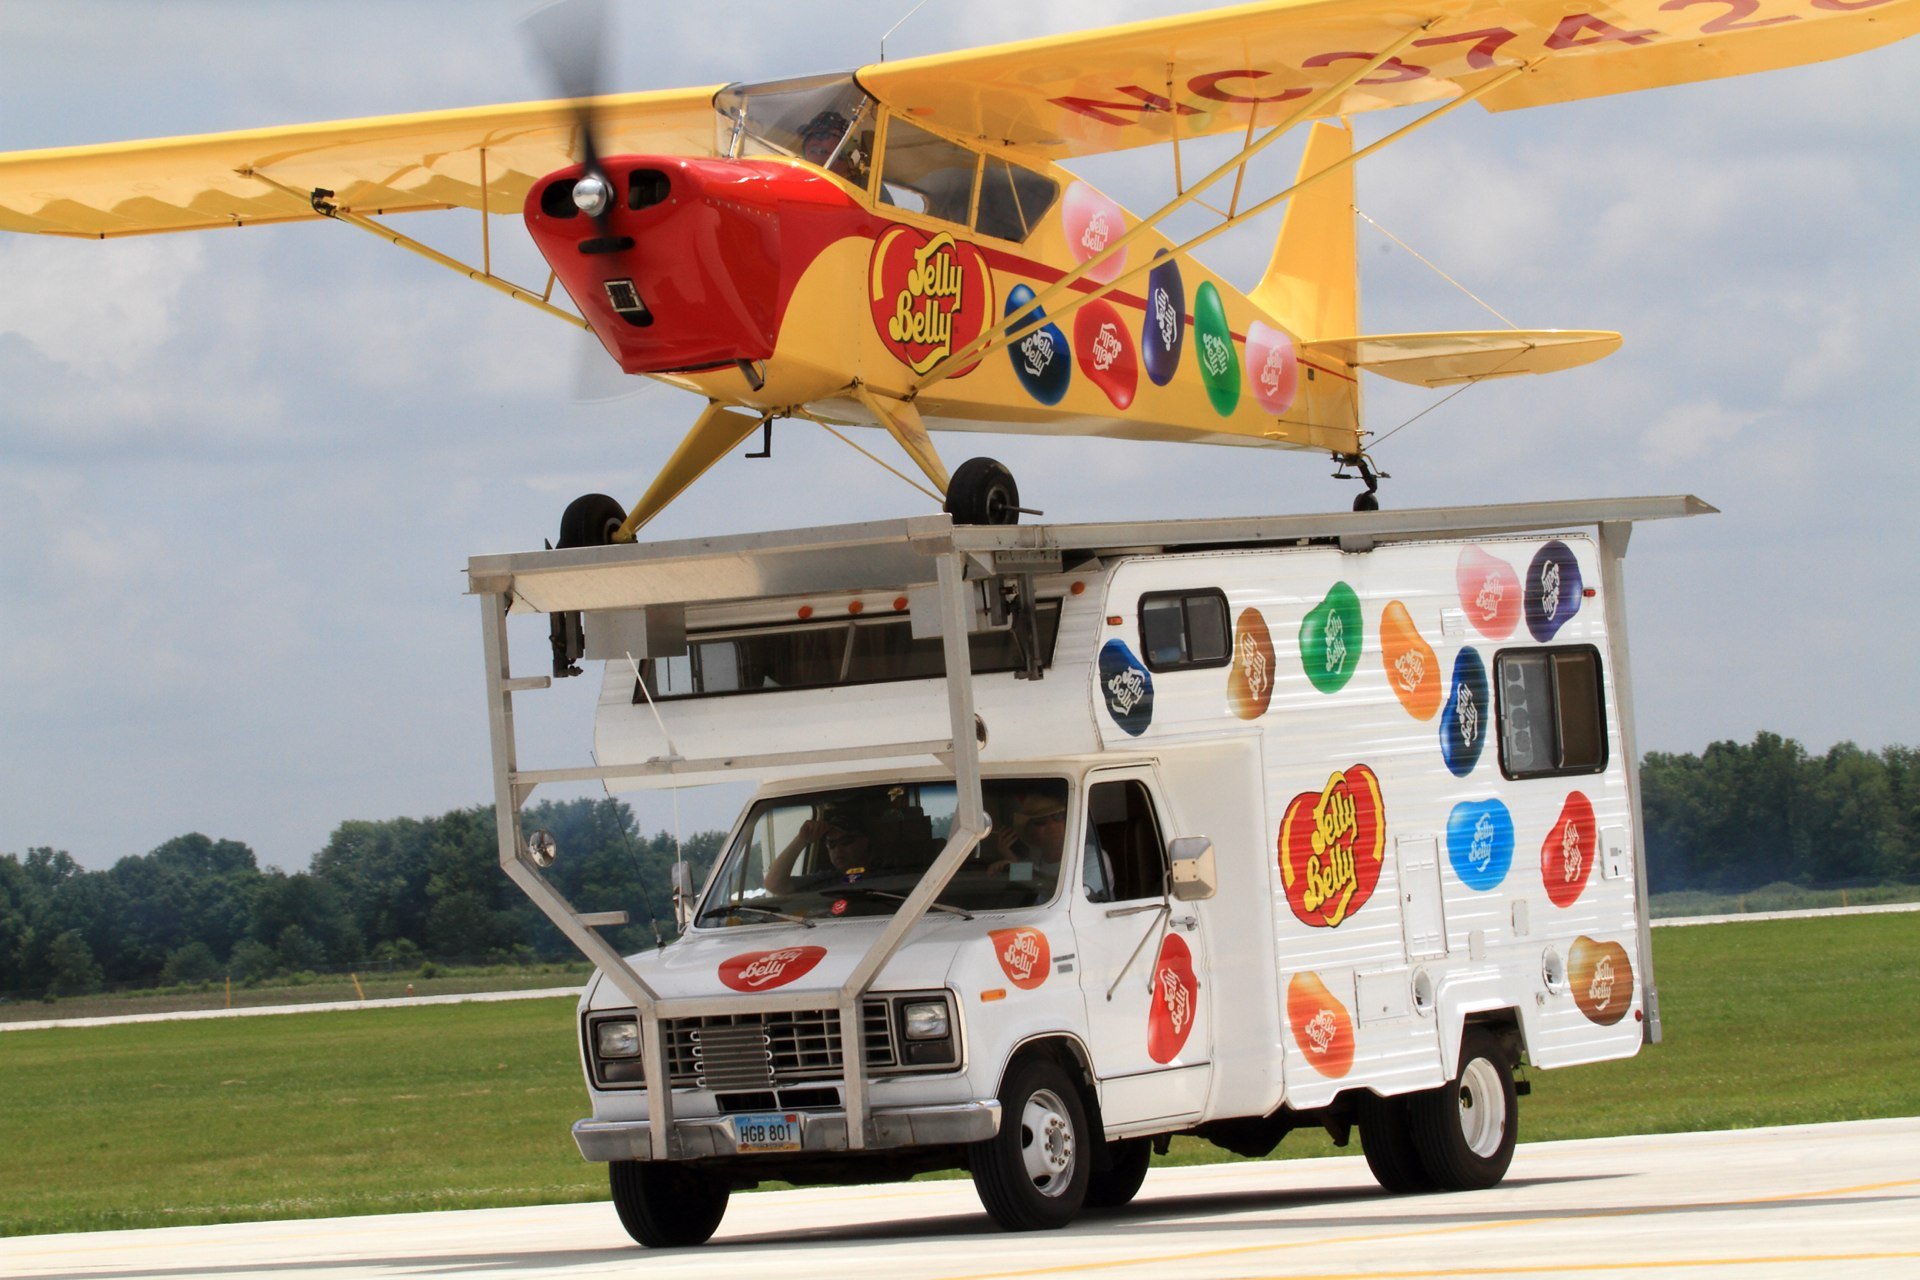 Jelly Belly RV and Airplane